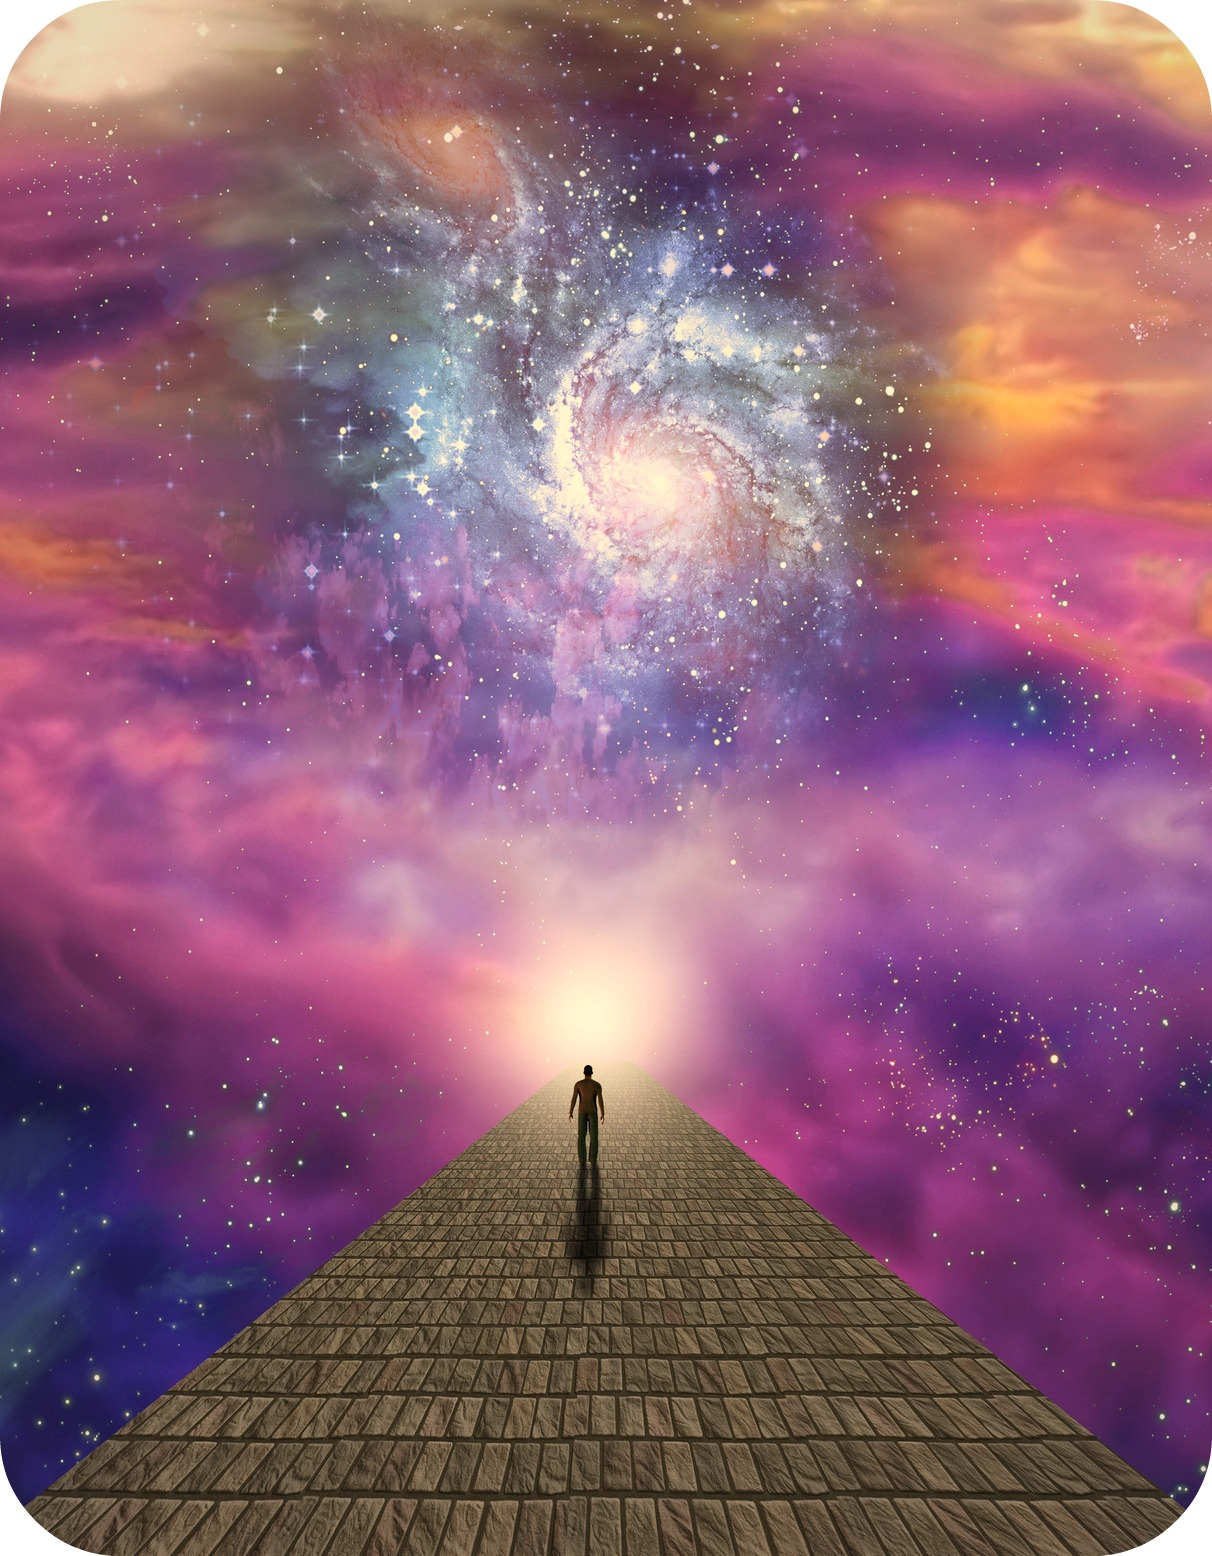 Poetry by Author Jan Jansen - Good Things are Coming into our Path of Life, so Never Stops Walking